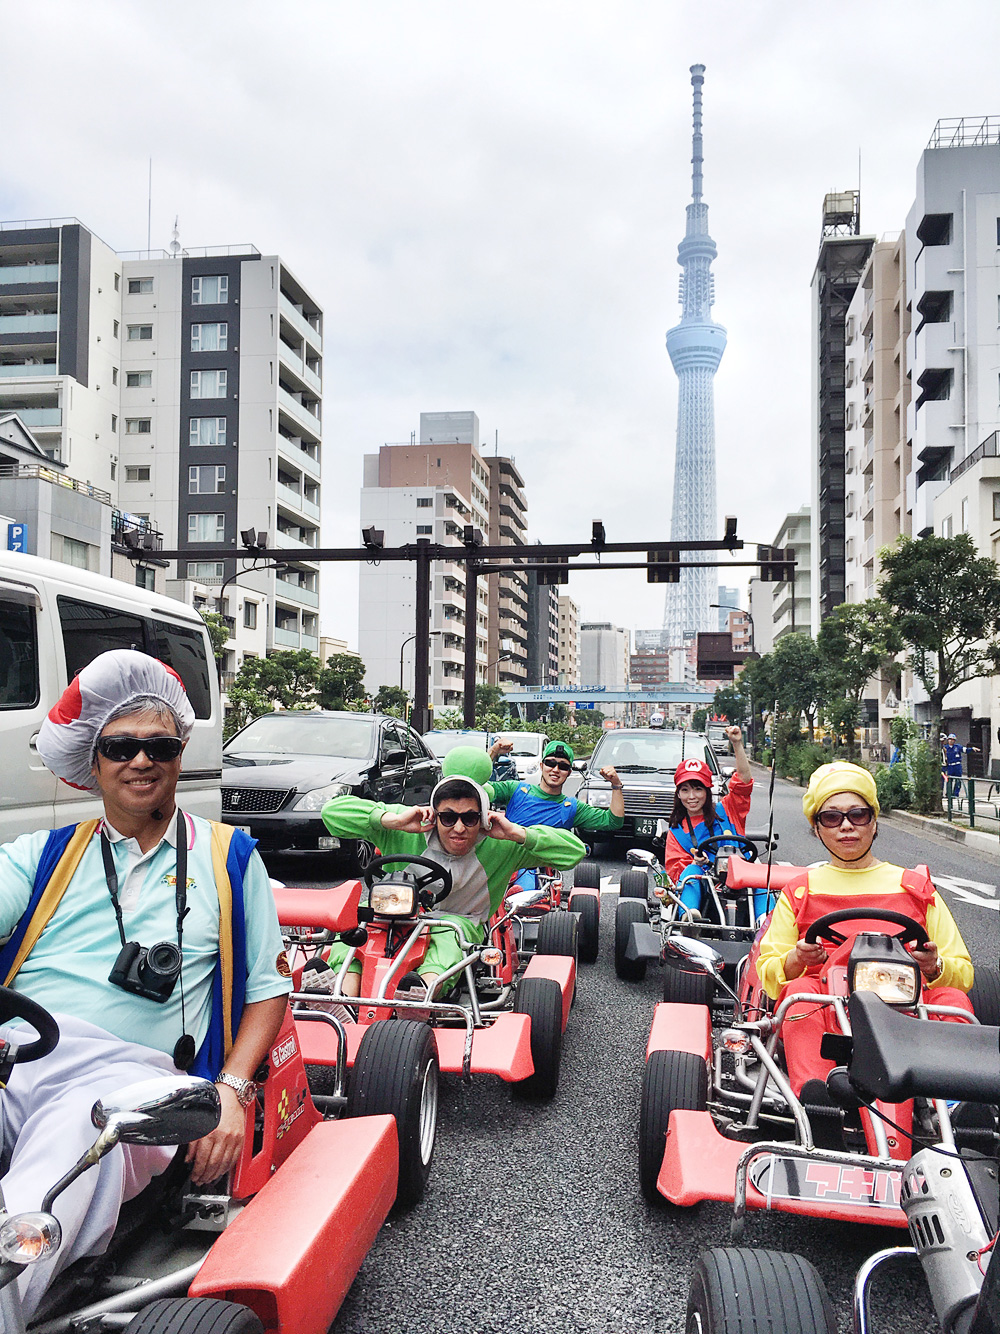 Real-Life Mario Kart in Tokyo, Japan - The Must Eat, Drink and Play in Tokyo